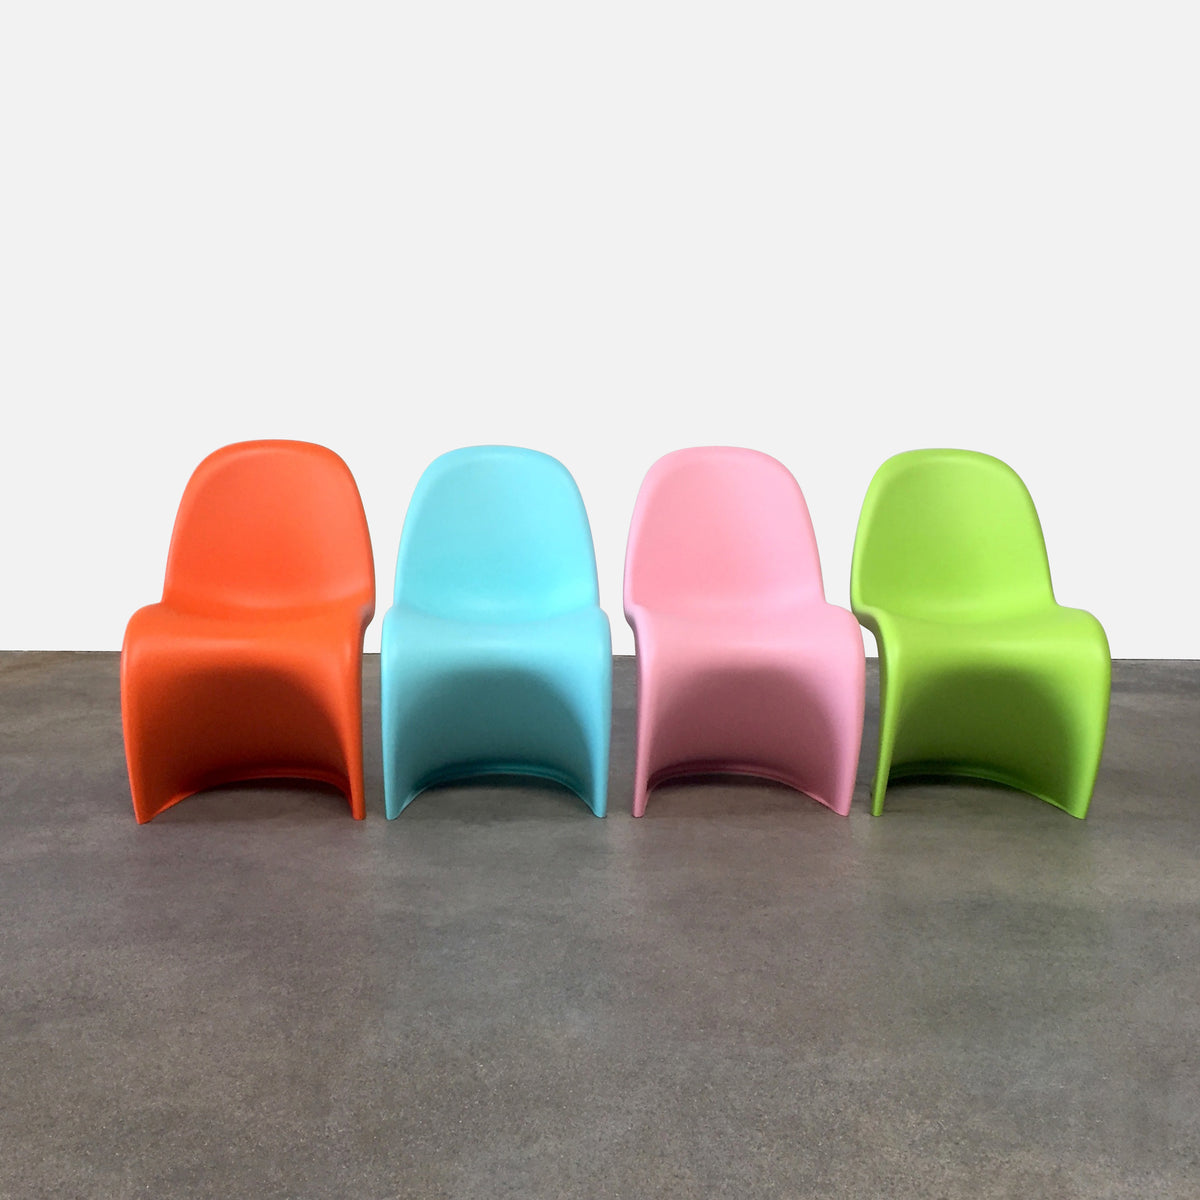 Vitra Panton Junior Multi-Color Dining Chairs Kids' Size Panton Chairs